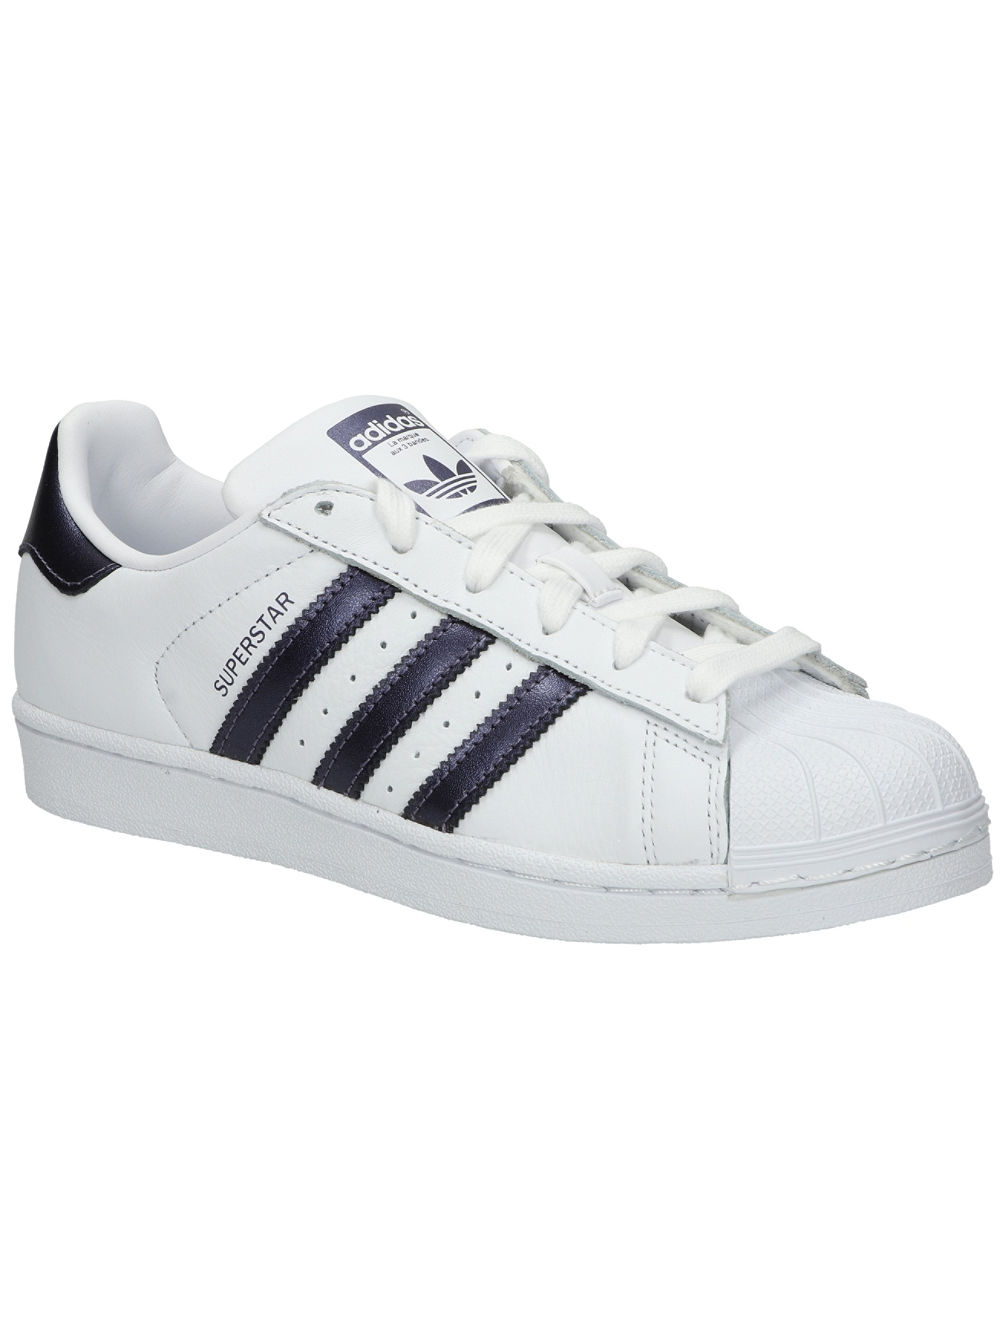 the latest 1cfbb 8930c Buy adidas Originals Superstar Sneakers Women online at blue